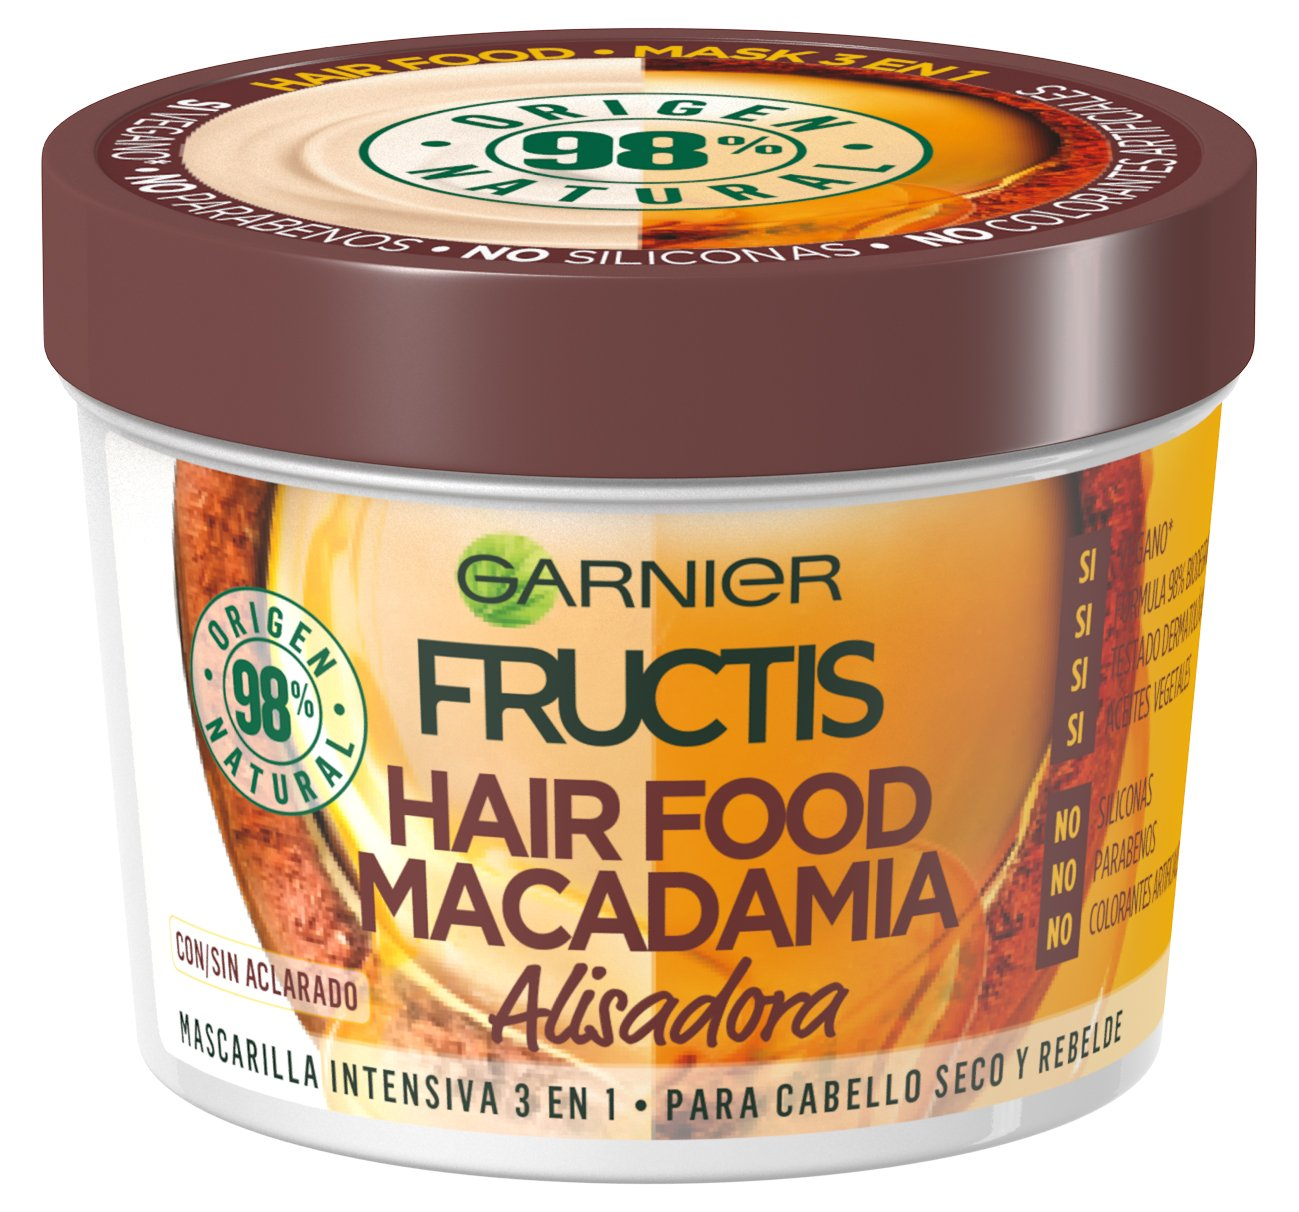 Mascarilla hair food fructos macadamia